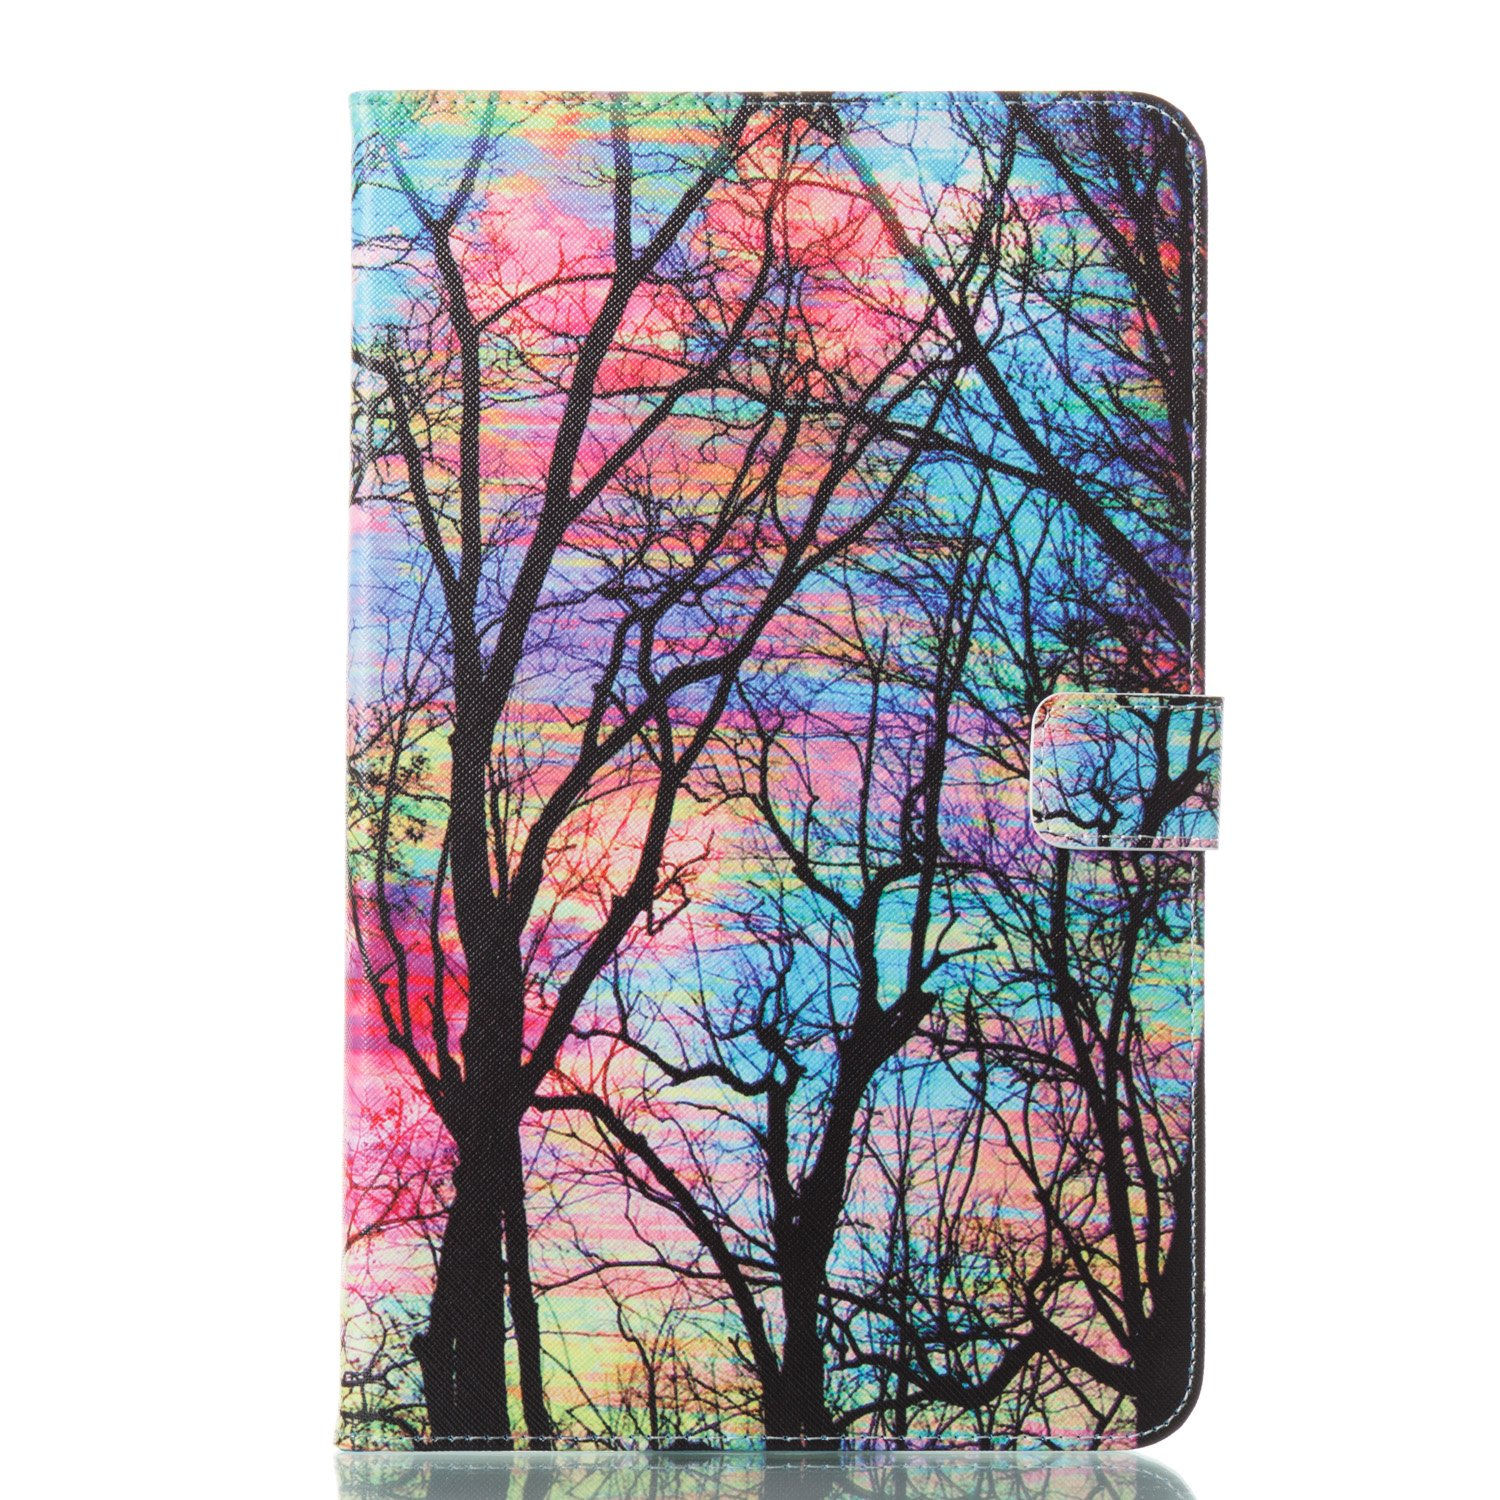 Alfort Samsung T580 Case, Samsung T580 Cover, 3D Painting iPad Case Cover Flip Fold PU Book Wallet Case for Samsung T580 Tablet Computer Image Colorful Trees